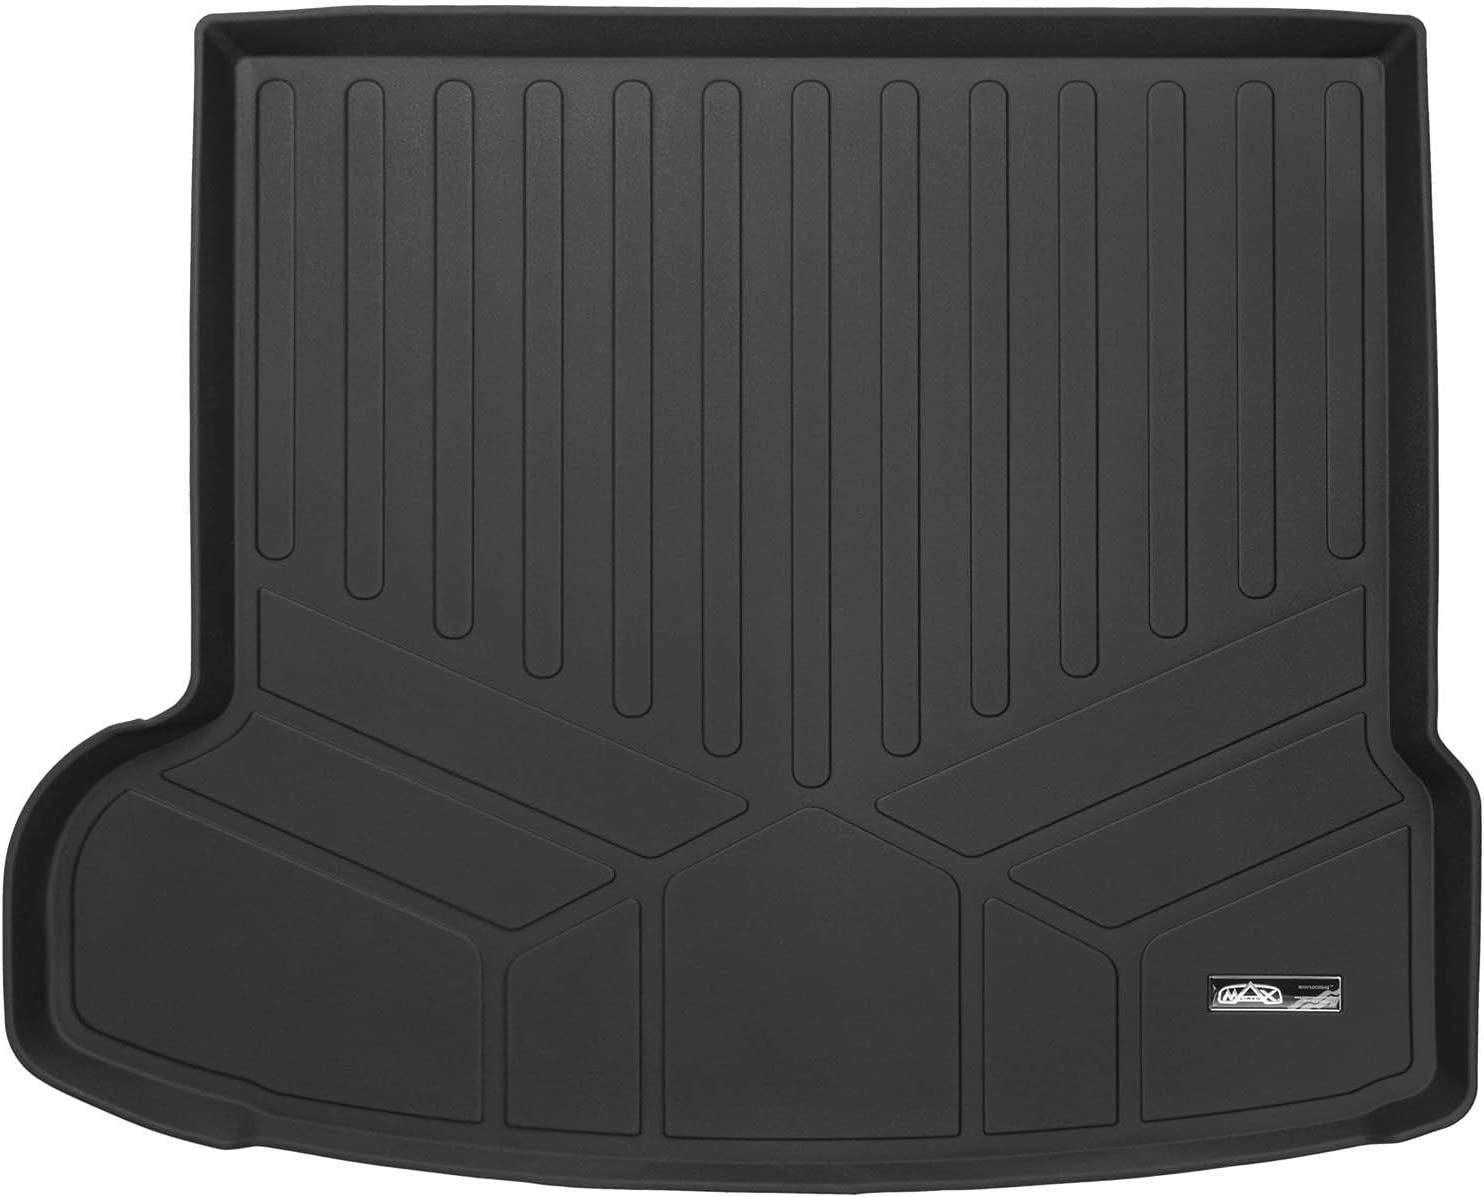 SMARTLINER All Weather Custom Fit Cargo Trunk Liner Floor Mat Black for 2017-2019 Jaguar F-Pace / 2018-2019 Range Rover Velar